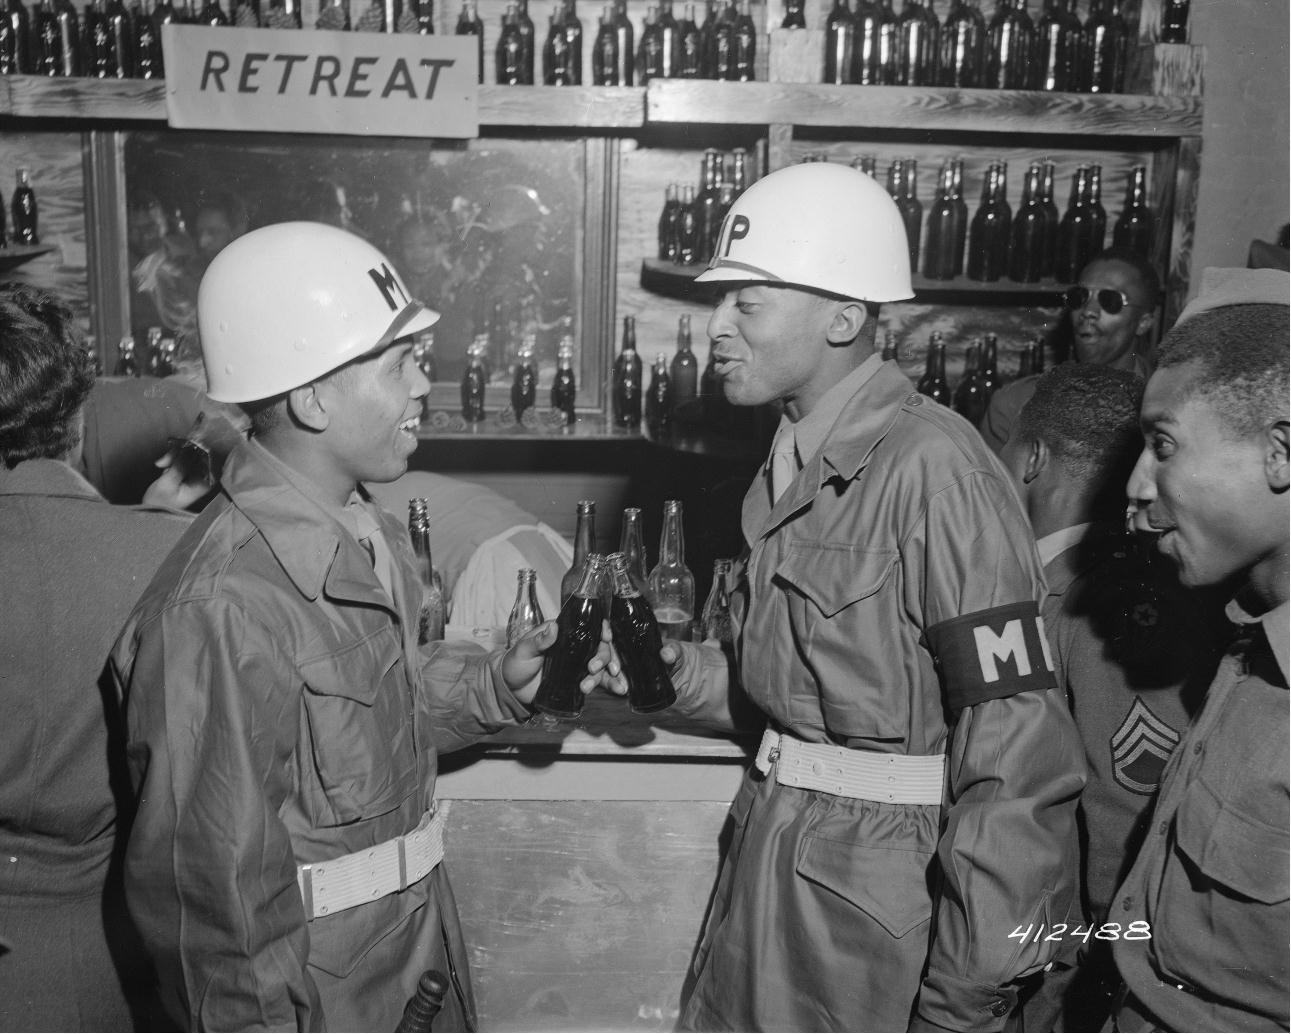 """Military Police officers toast with their Coca-Colas at a """"Retreat Club,"""" July 21, 1945. (Records of the Office of the Chief Signal Officer, National Archives)"""